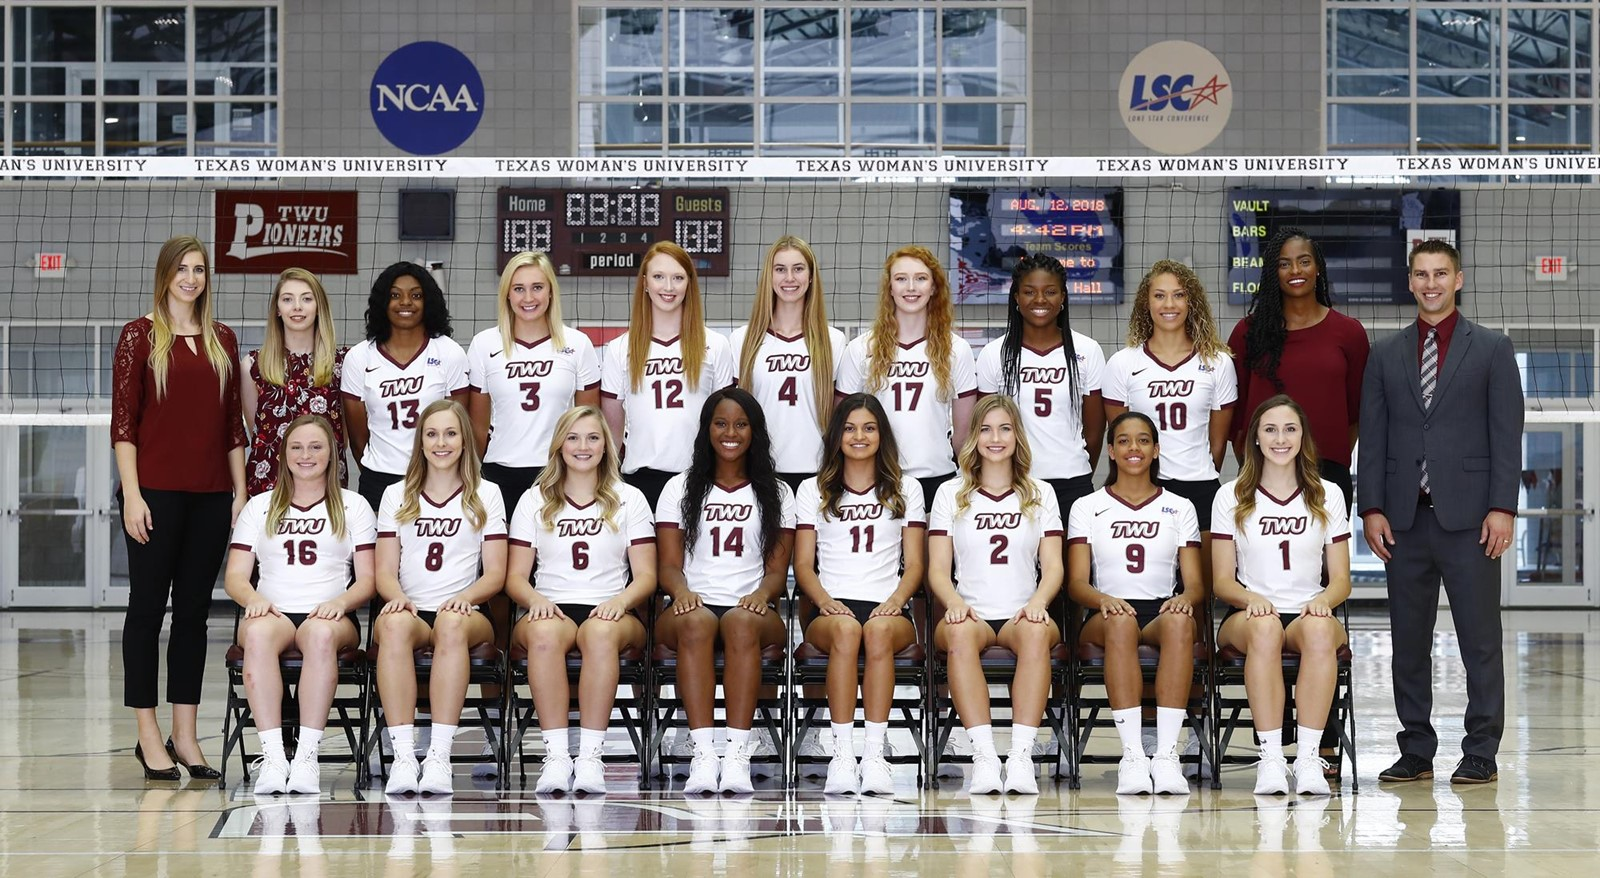 2018 Volleyball Roster Texas Woman S University Athletics